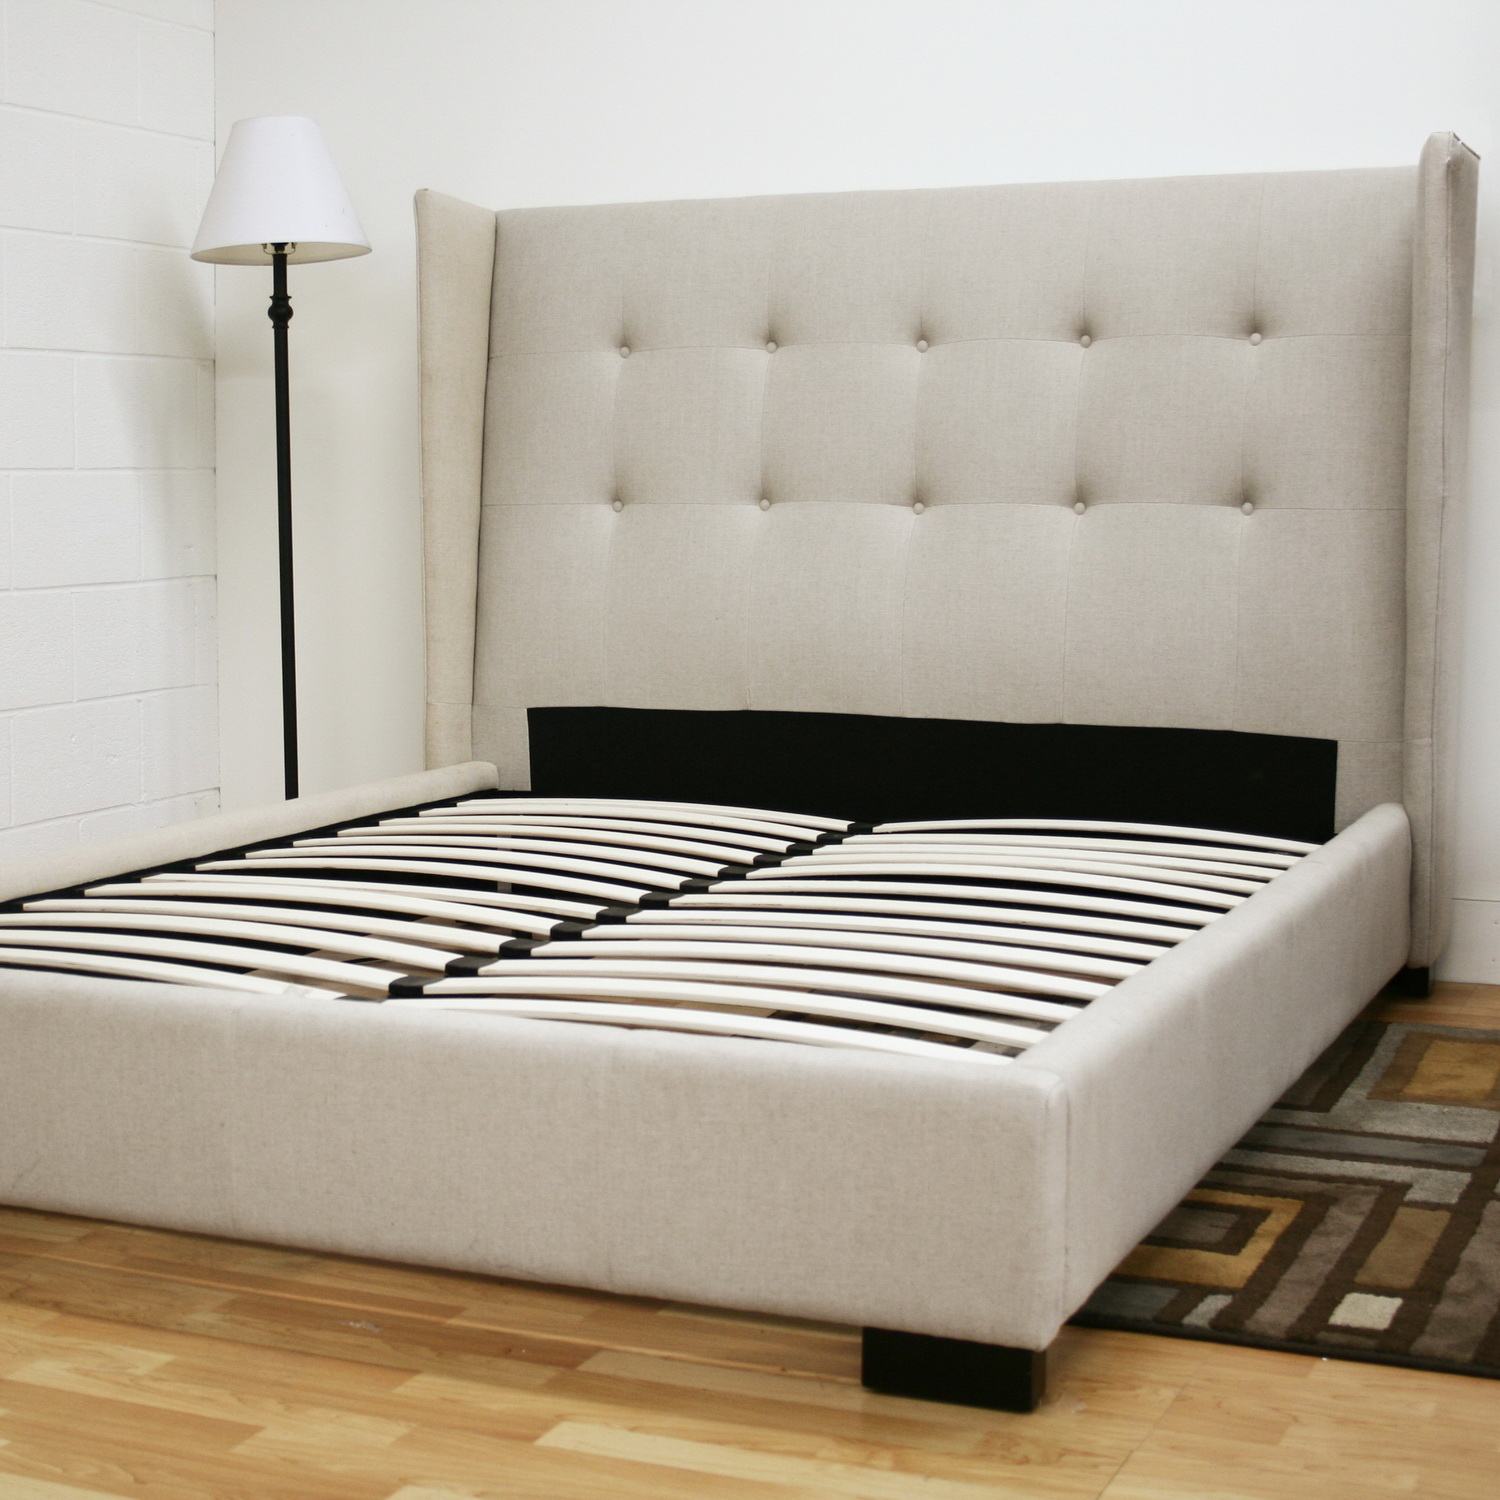 Furniture Bedroom Furniture Bed Frame Queen Size